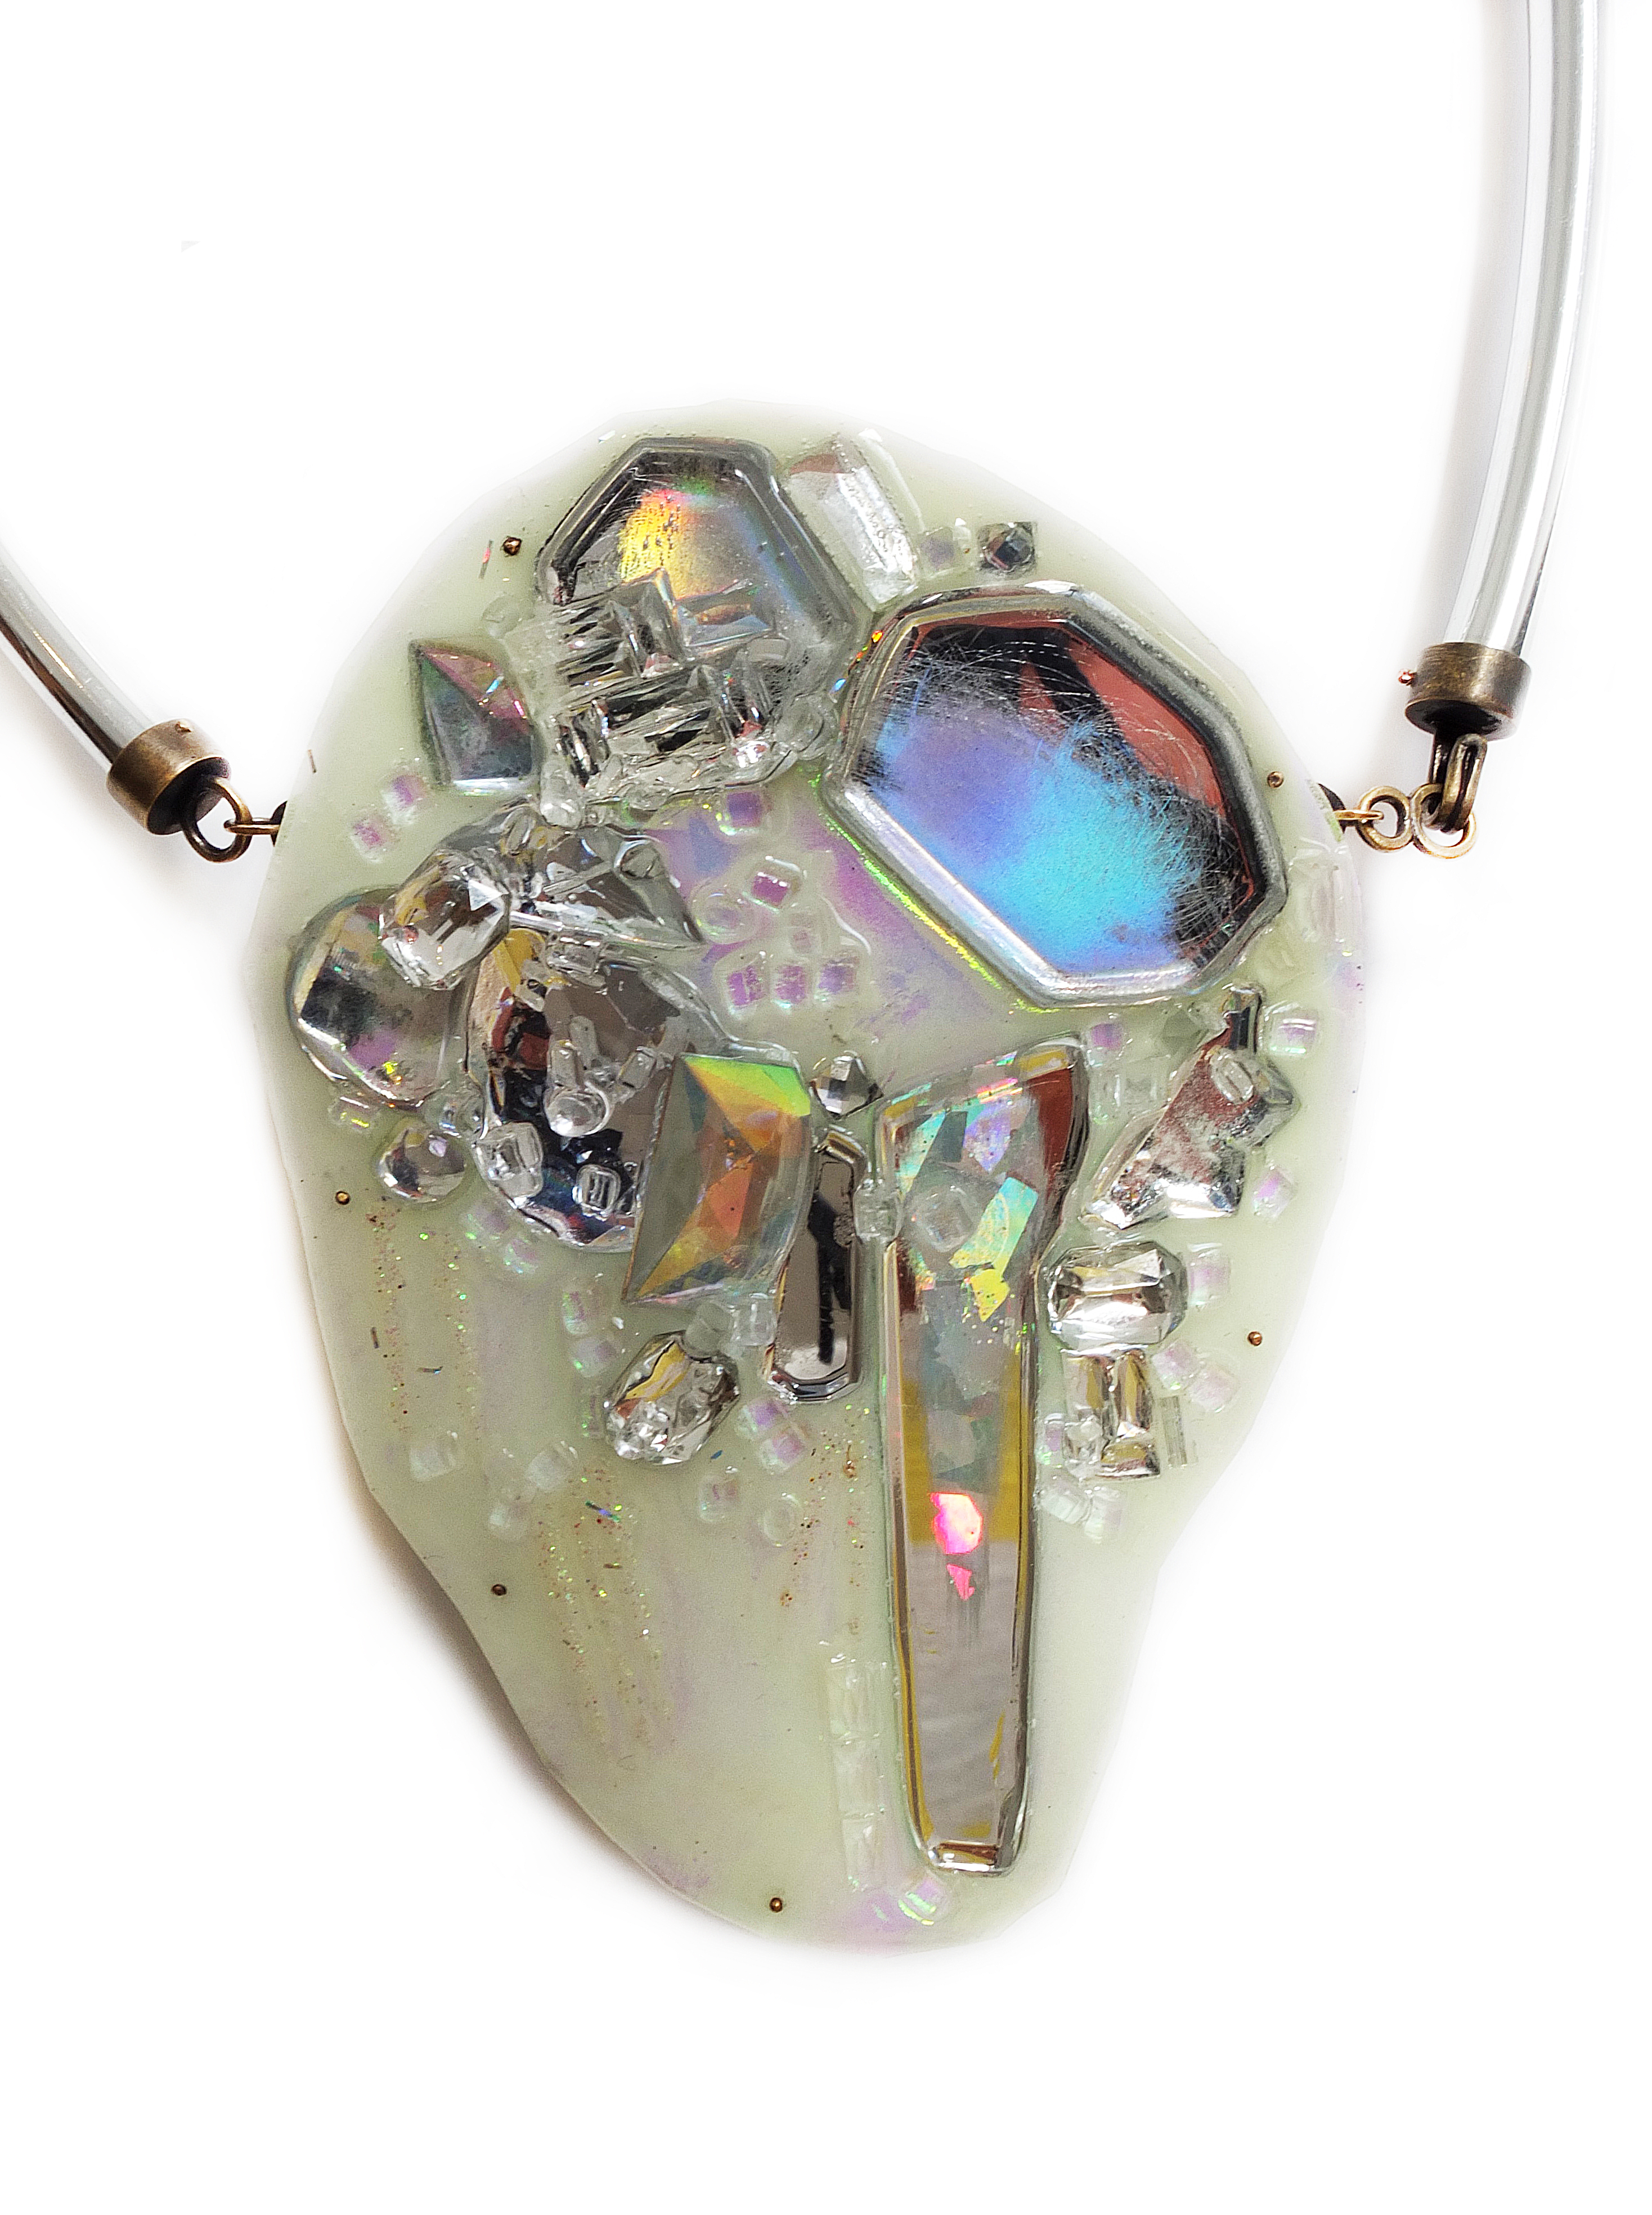 Nikki Couppee, Glow Gems Necklace, Plexiglass, brass, found objects